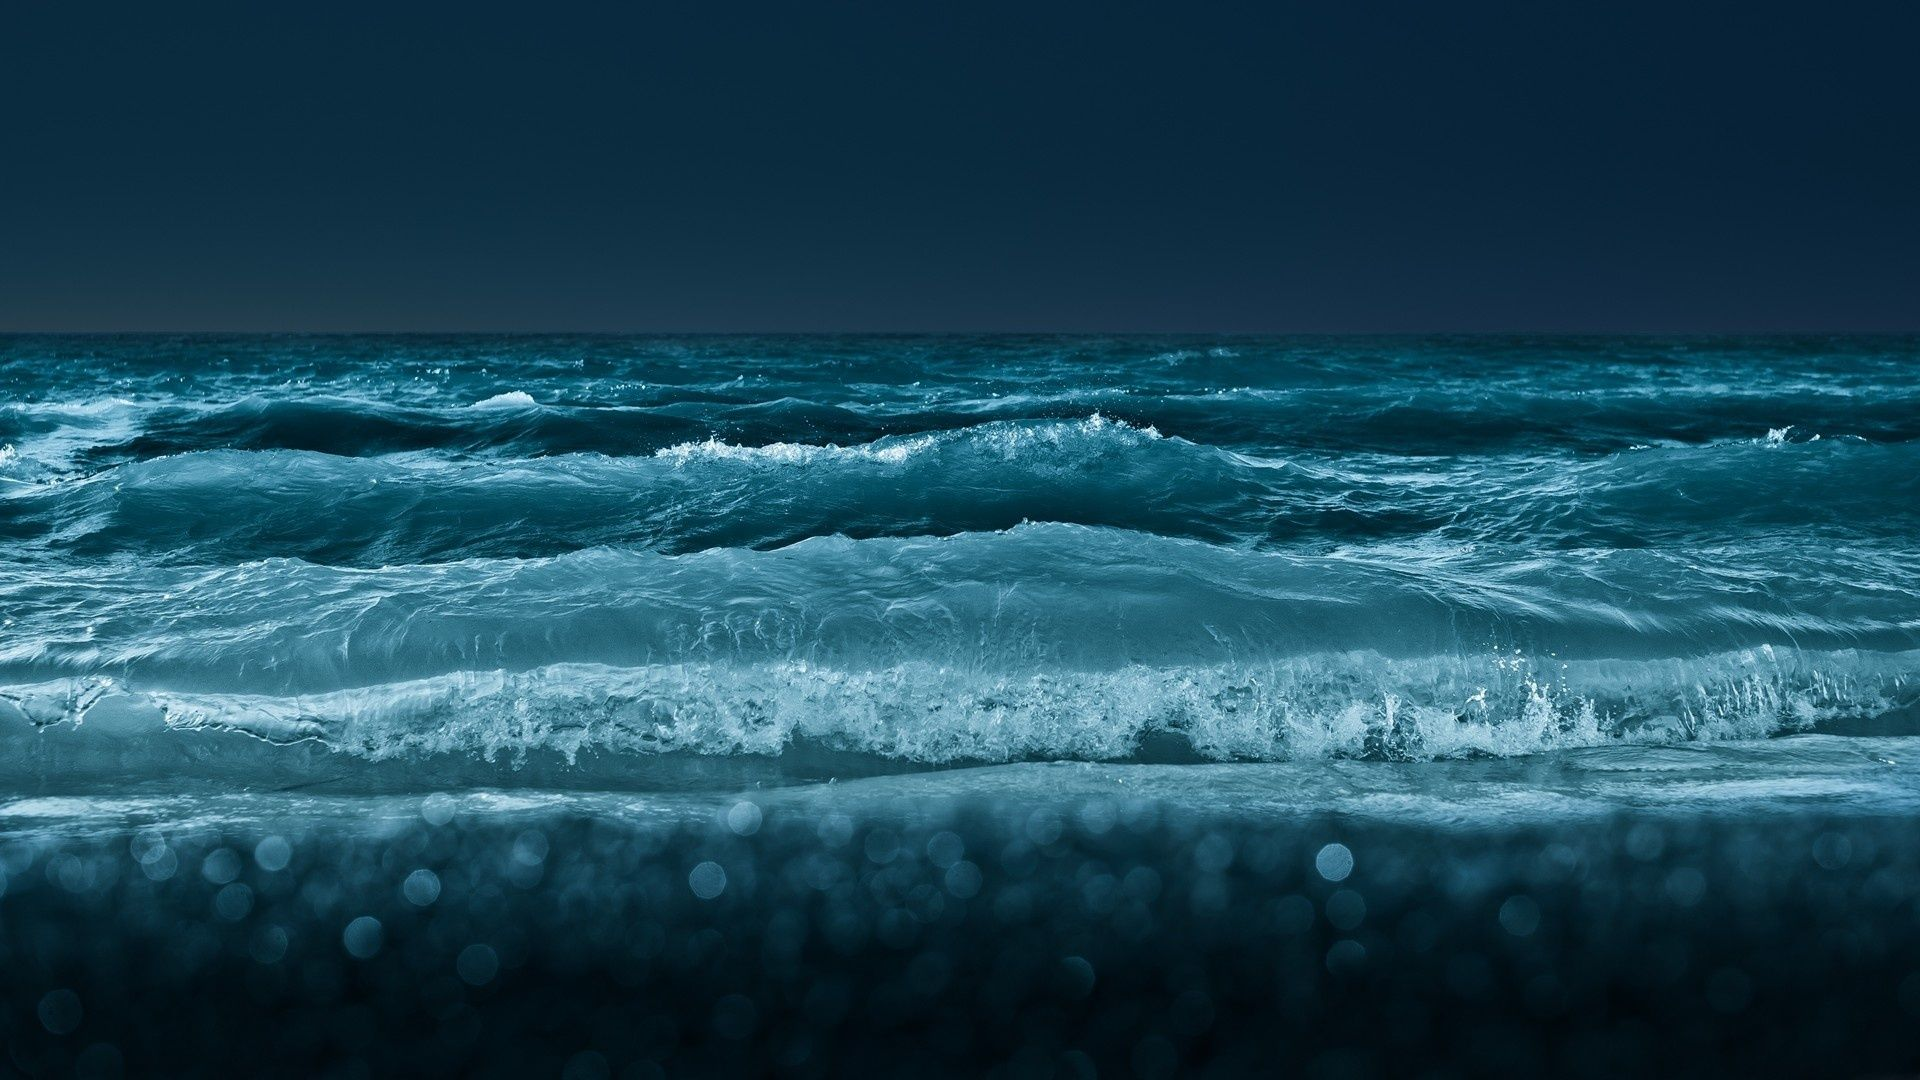 Ocean Themed Picture